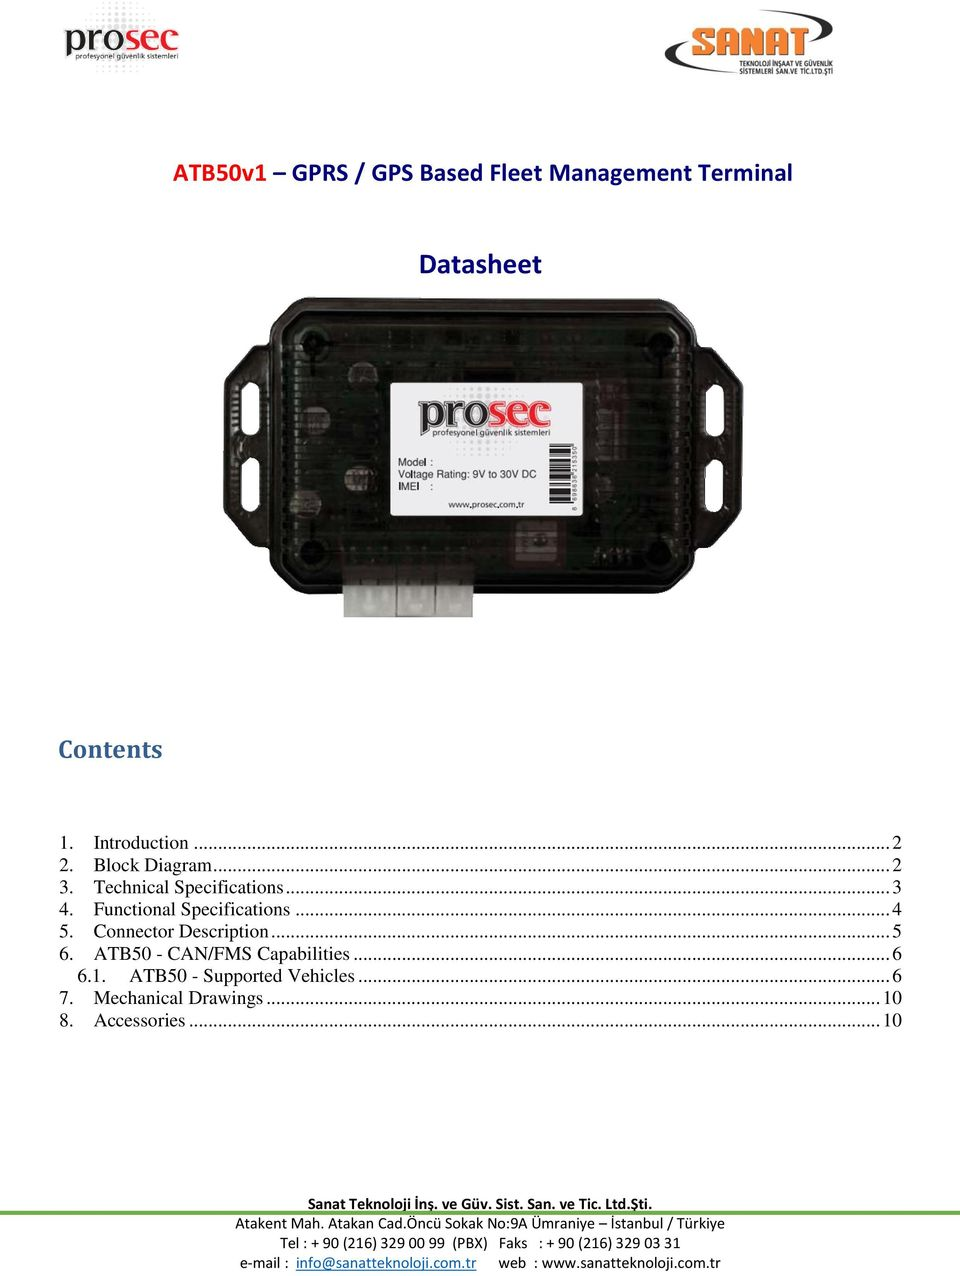 ATB50v1 GPRS / GPS Based Fleet Management Terminal